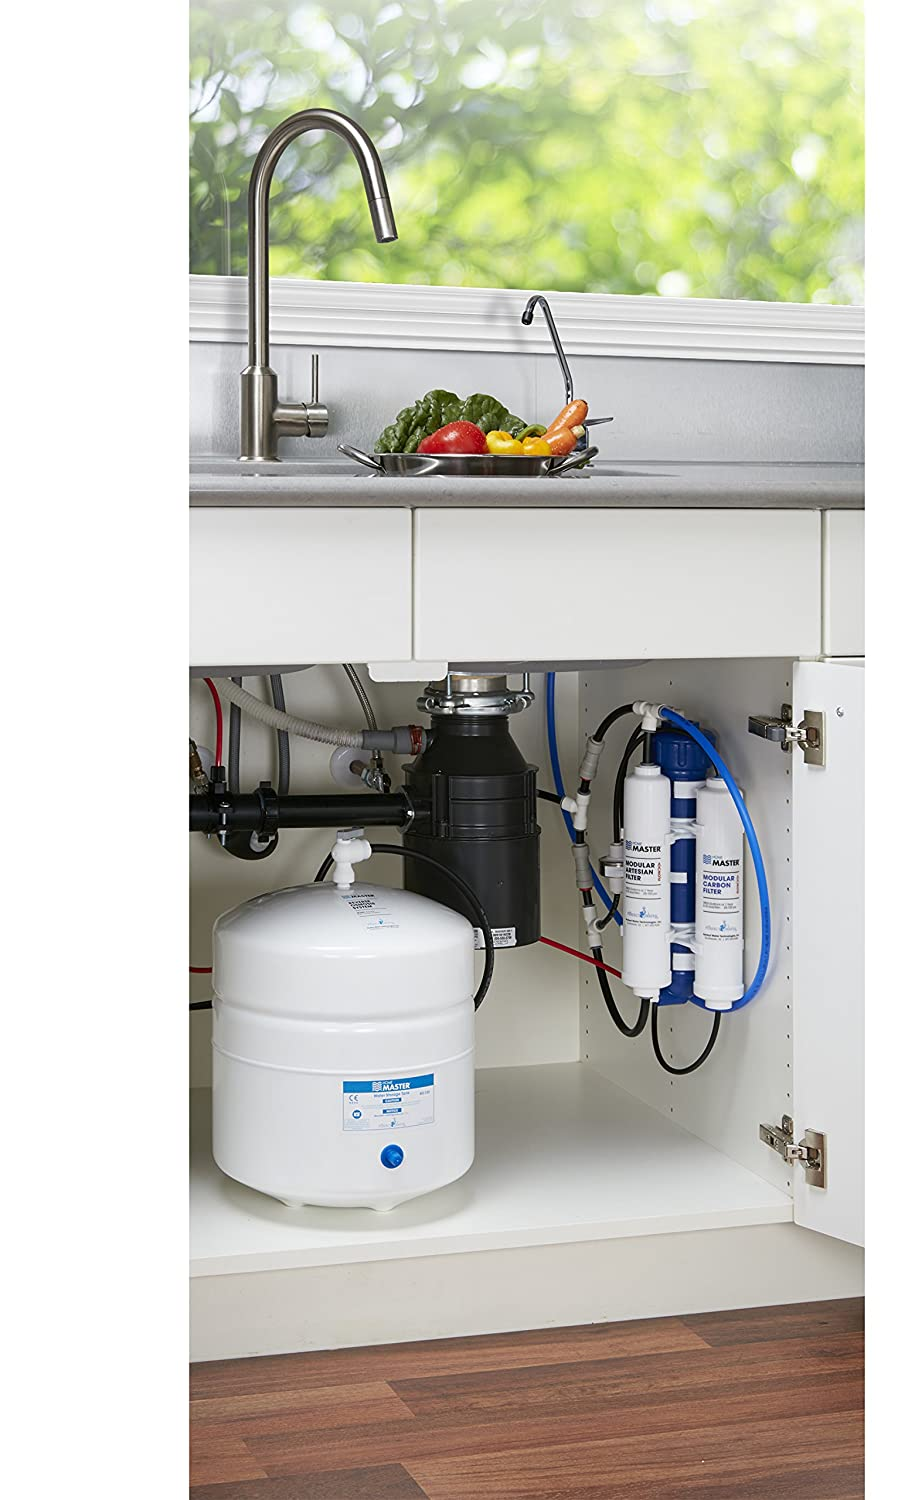 Home Master TMAFC Artesian Full Contact Reverse Osmosis Under Counter Water Filtration System, White